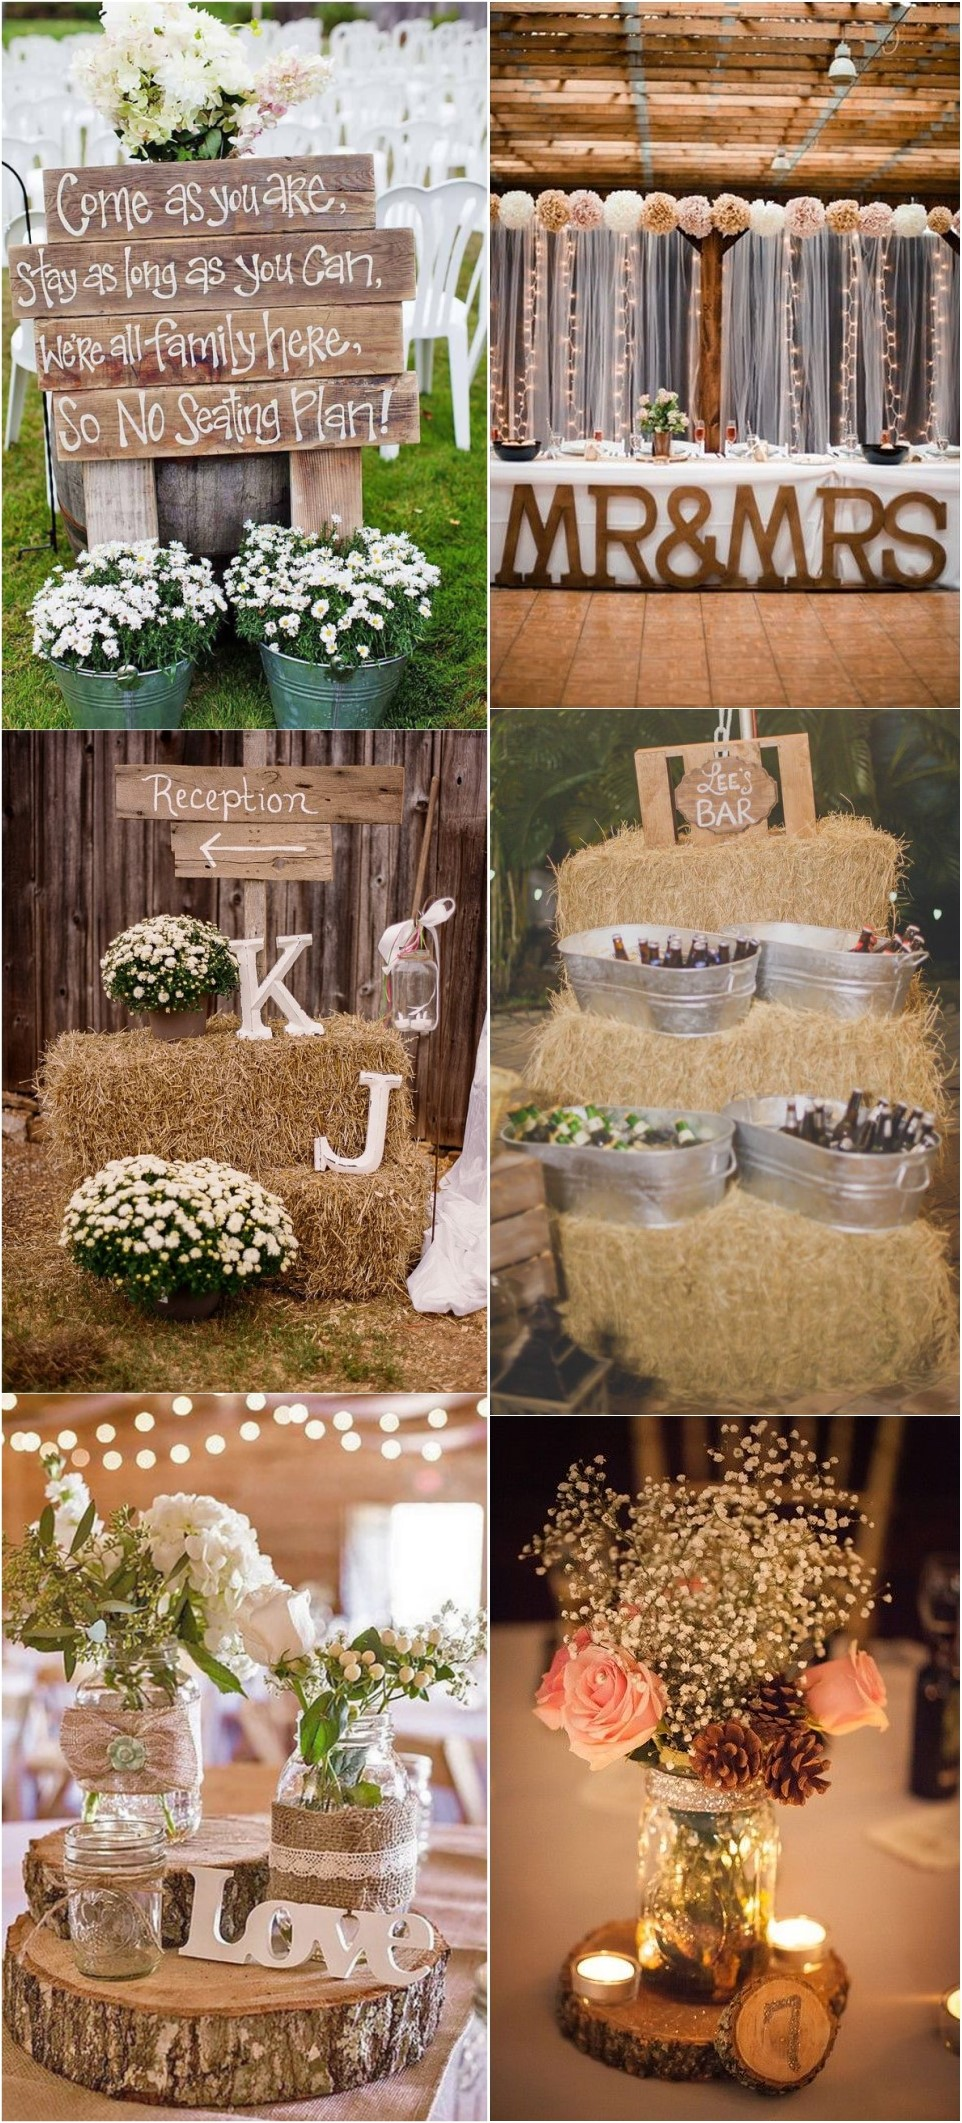 Country Wedding Ideas.Rustic Country Wedding Ideas Weddinginclude Wedding Ideas